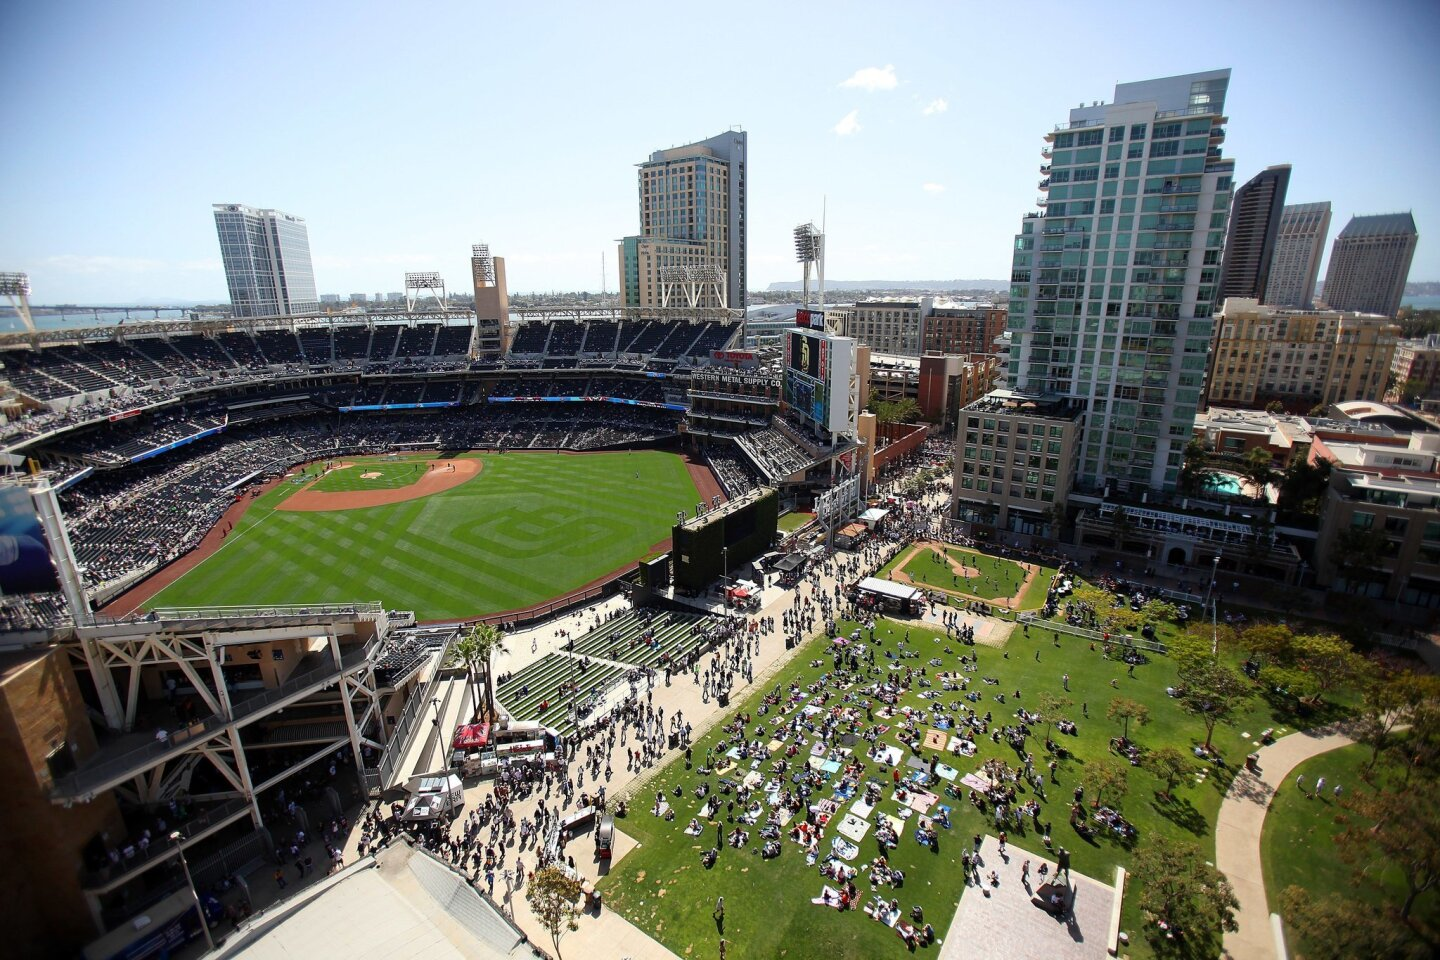 San Diego, CA_4/9/15_ The Padres open up a series against the San Francisco Giants Thursday afternoon for their Major League Opening Day.|This aerial view of Petco Park and the Park at the Park was taken from a nearby office building.| Photo by John Gastaldo/U-T San Diego/Zuma Pres